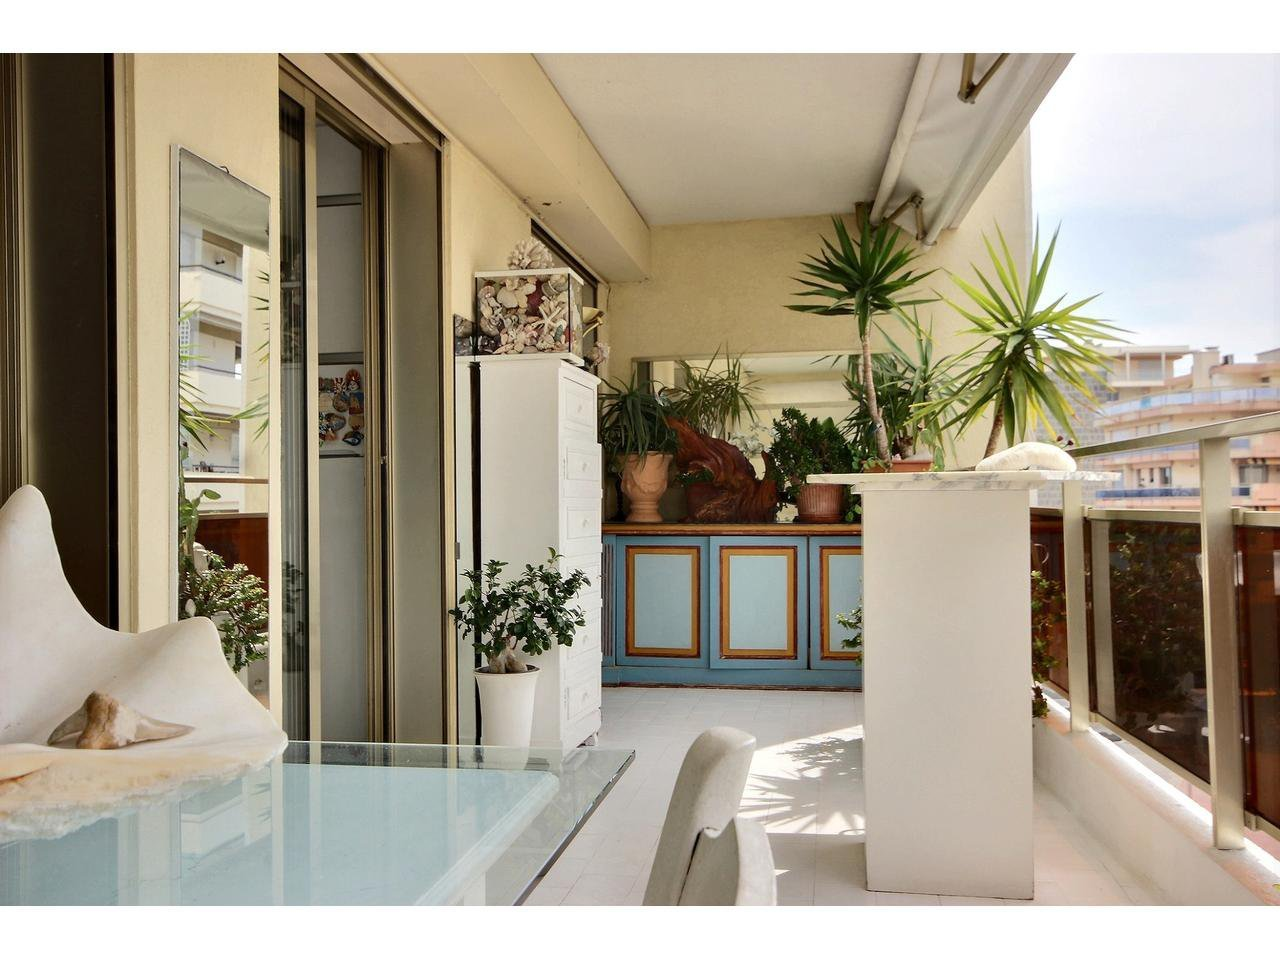 2 bedrooms in Cannes